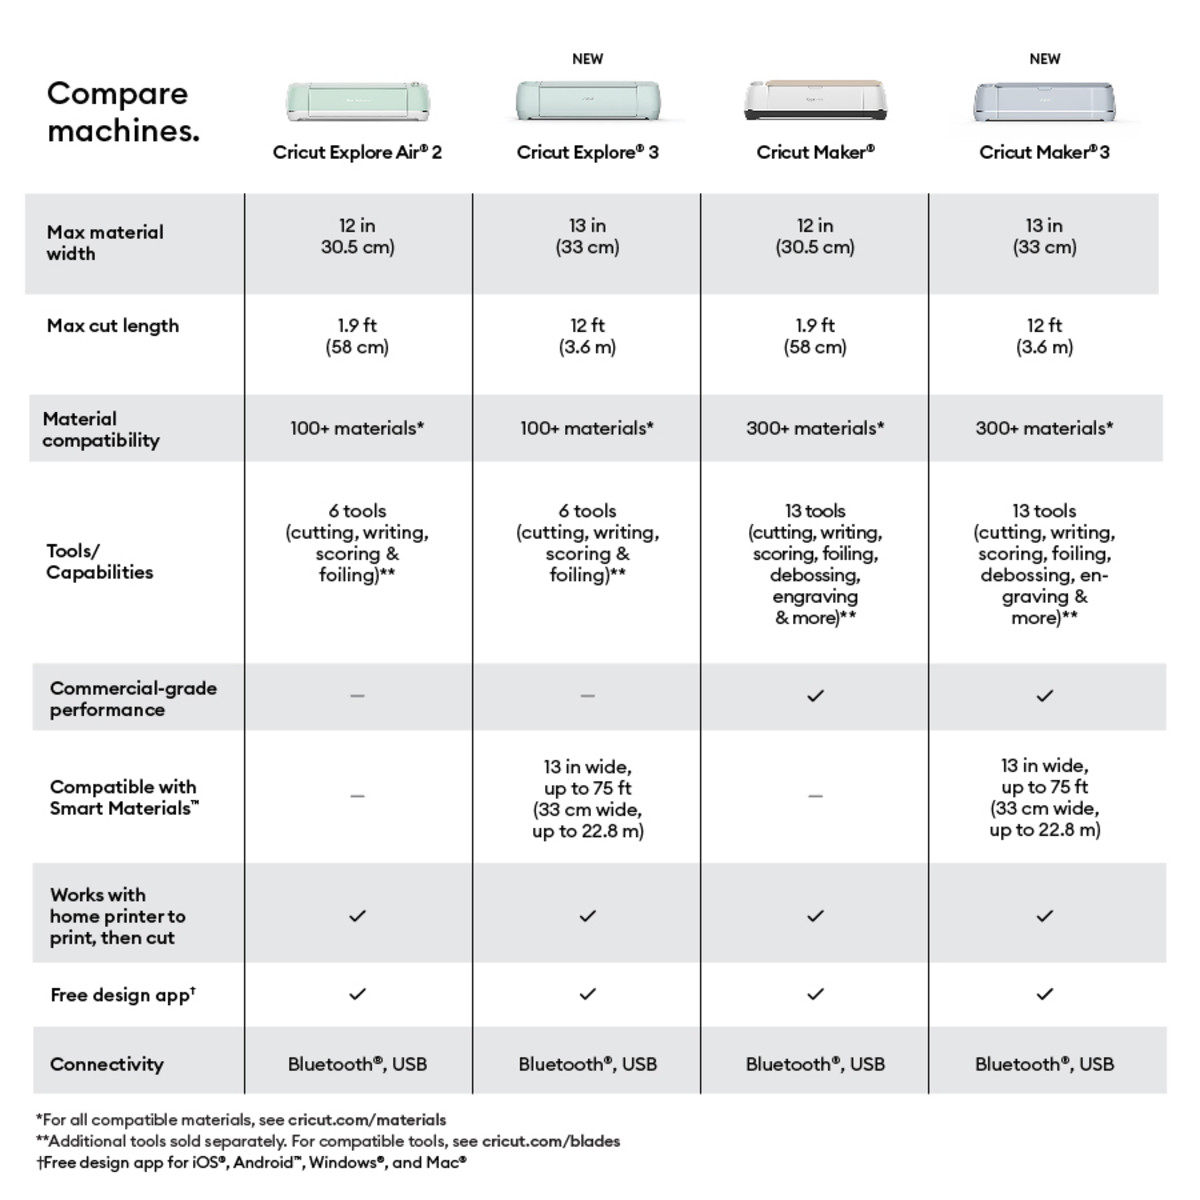 Which Cricut is right for you? Compare and decide which machine fills your needs